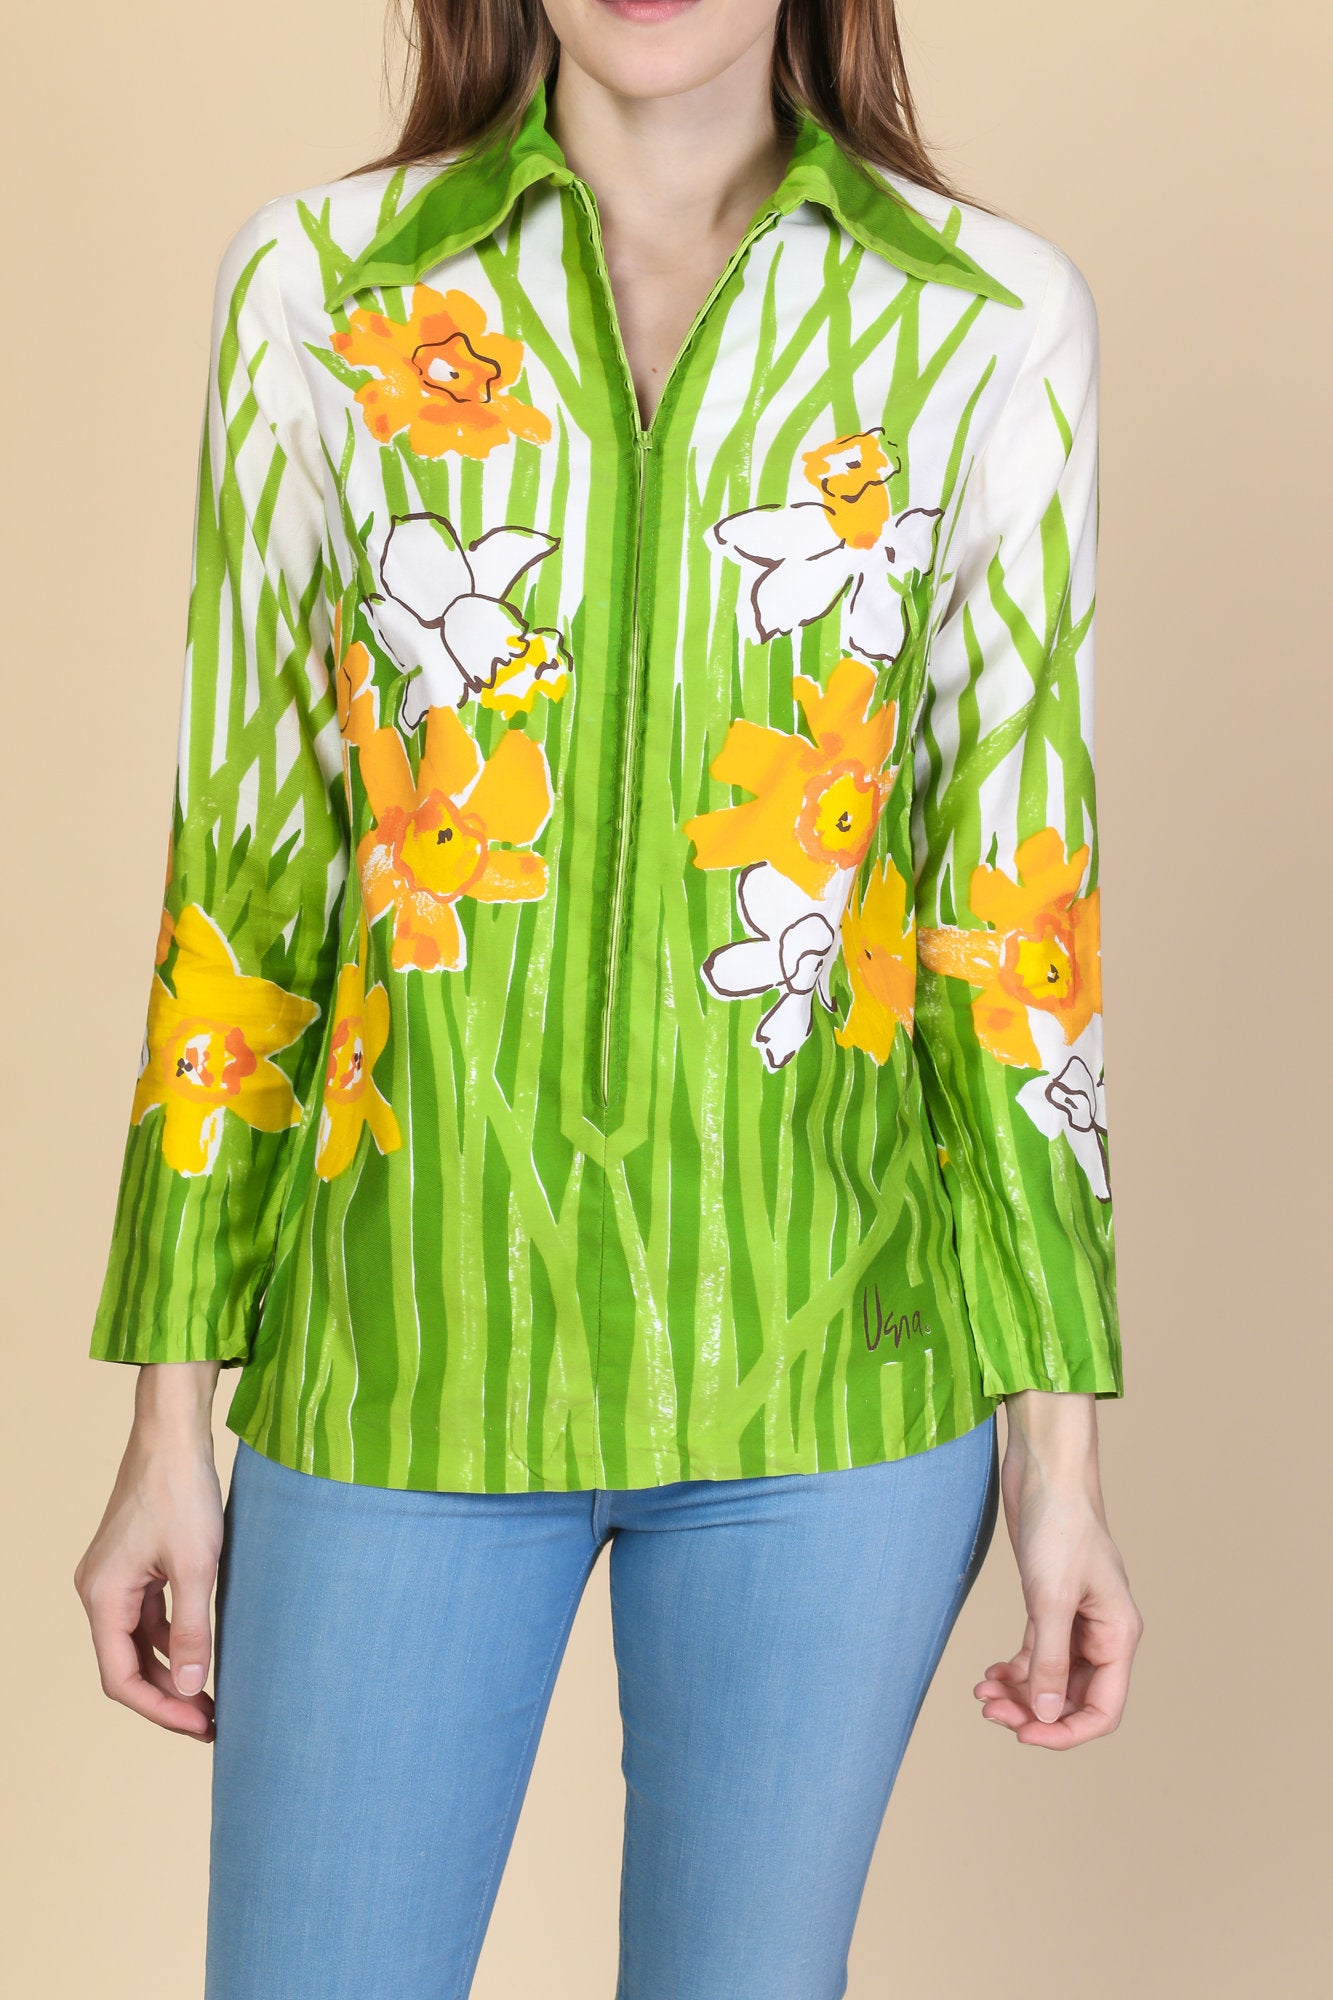 70s Vera Neumann Floral Zip Up Blouse - Small